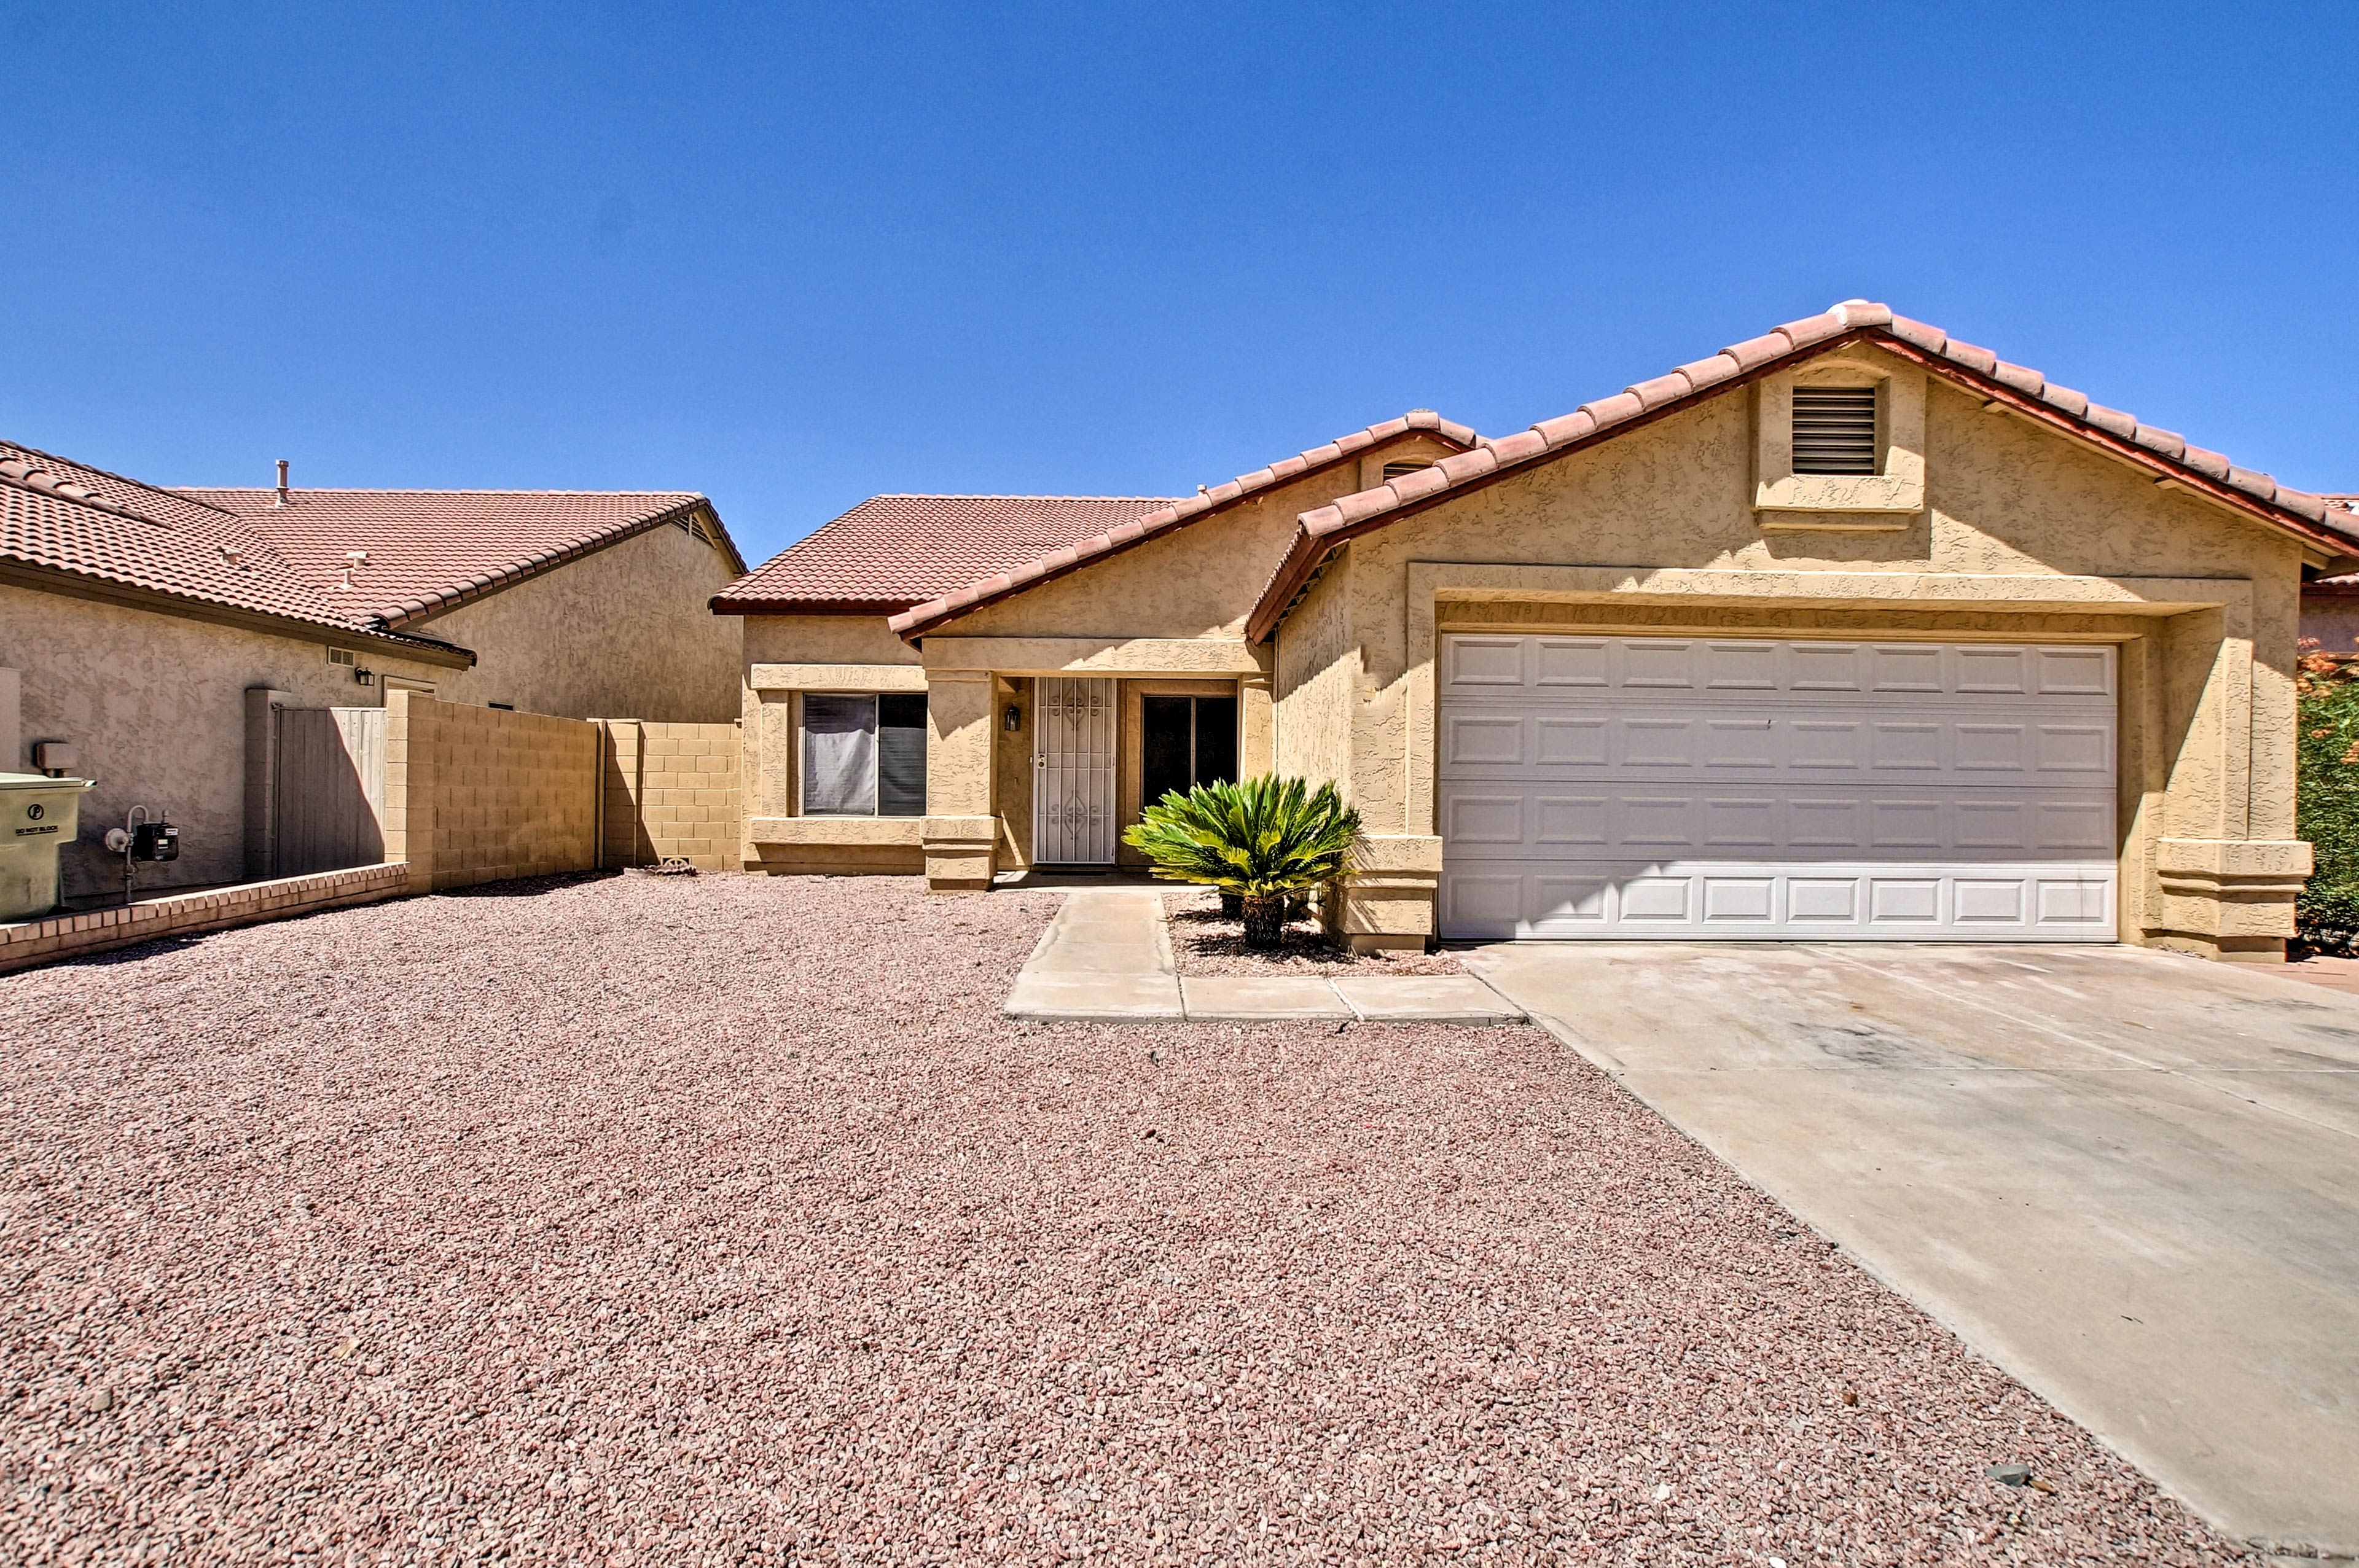 You'll love your time spent at this North Glendale home base!